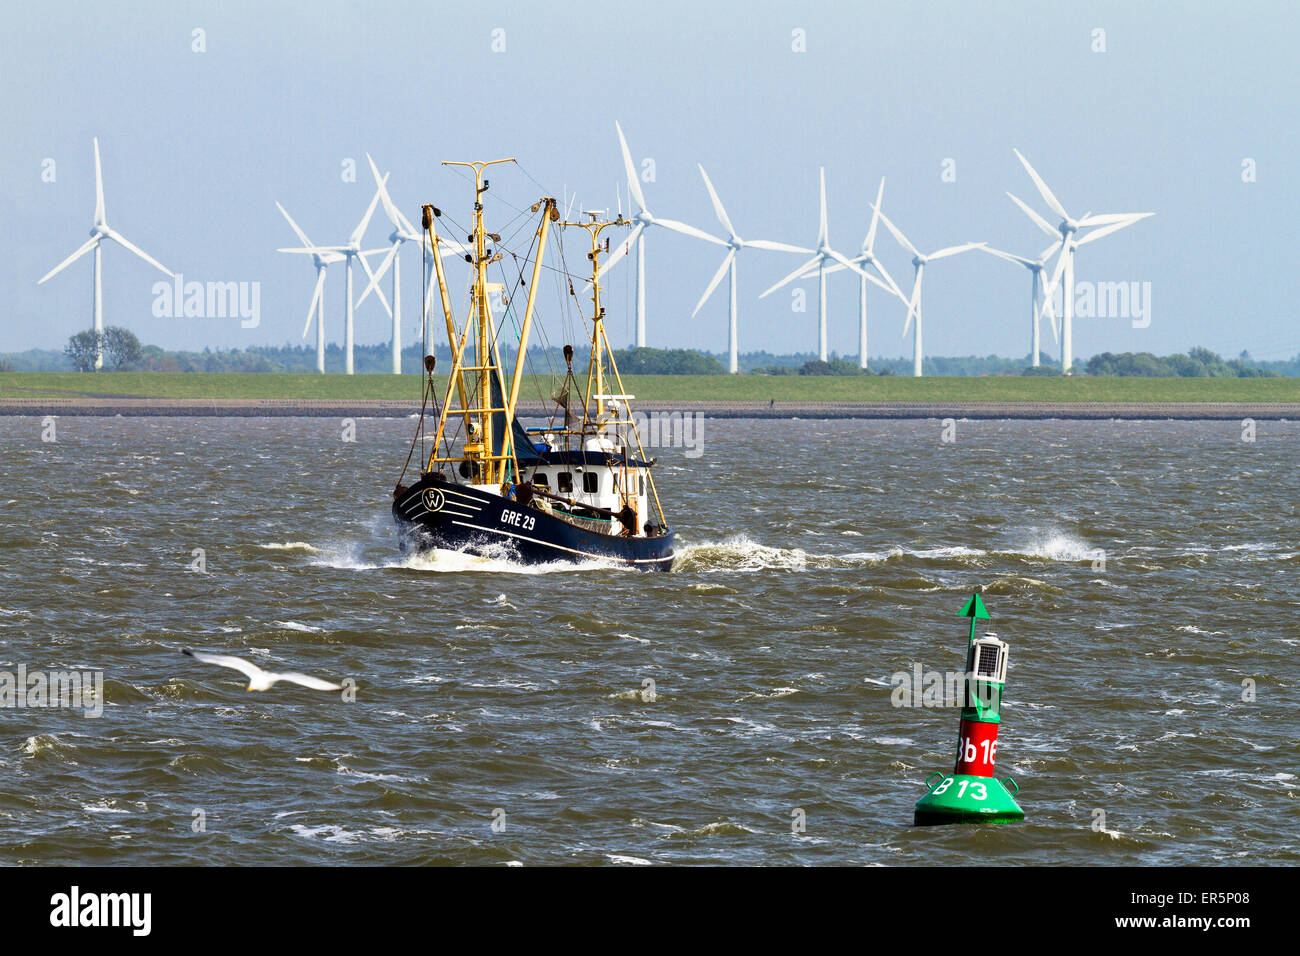 Fishing boat and wind power plant, North Sea, East Frisian Islands, East Frisia, Lower Saxony, Germany, Europe - Stock Image